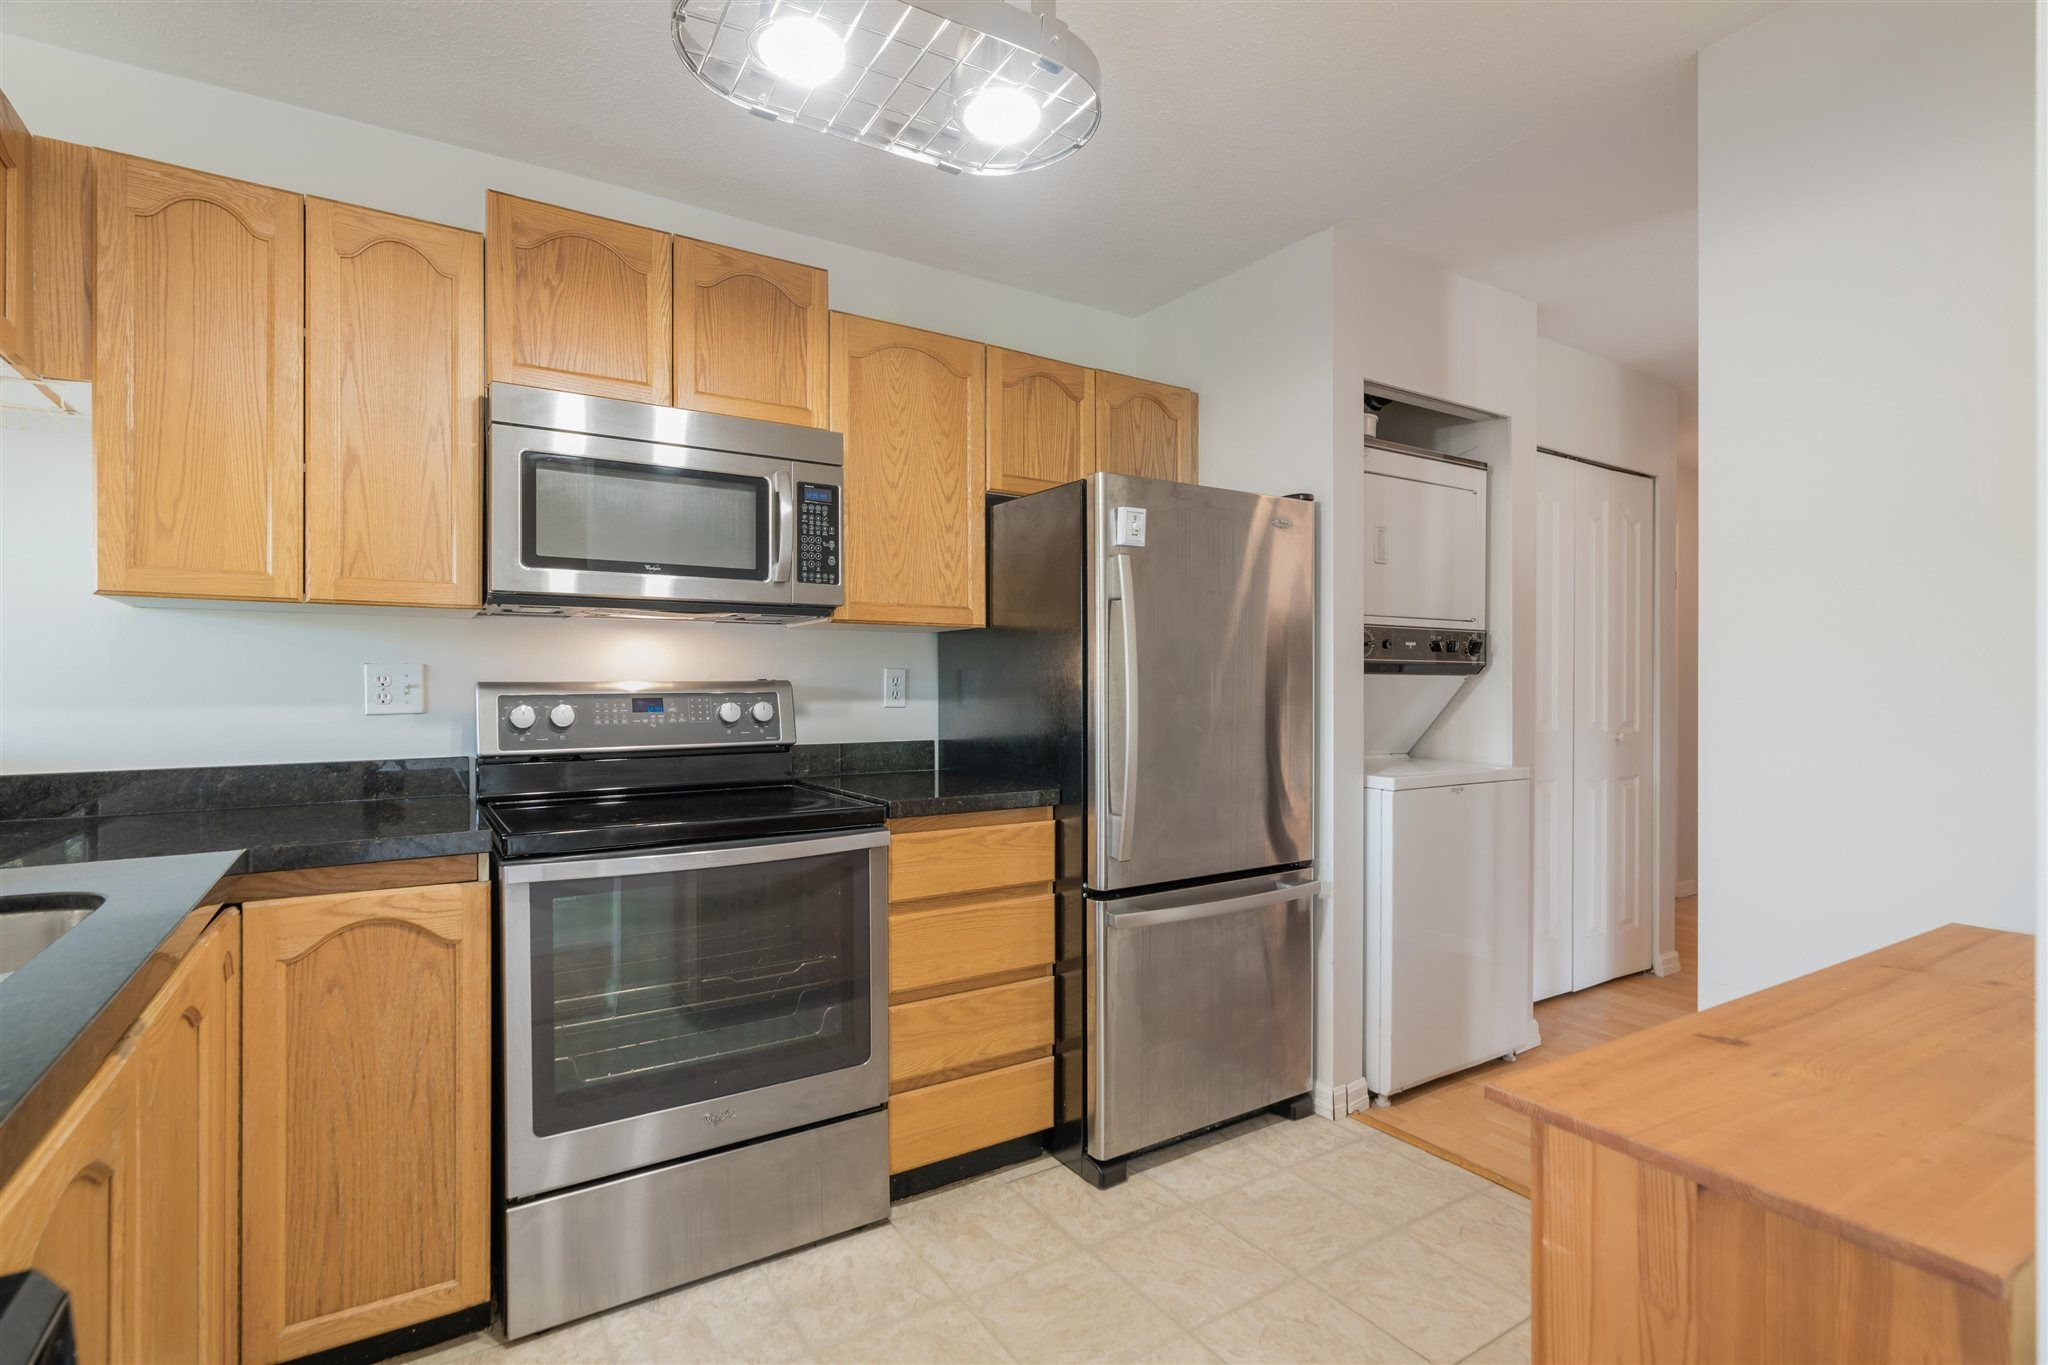 Photo 15: Photos: 303 1171 PIPELINE Road in Coquitlam: New Horizons Condo for sale : MLS®# R2607932